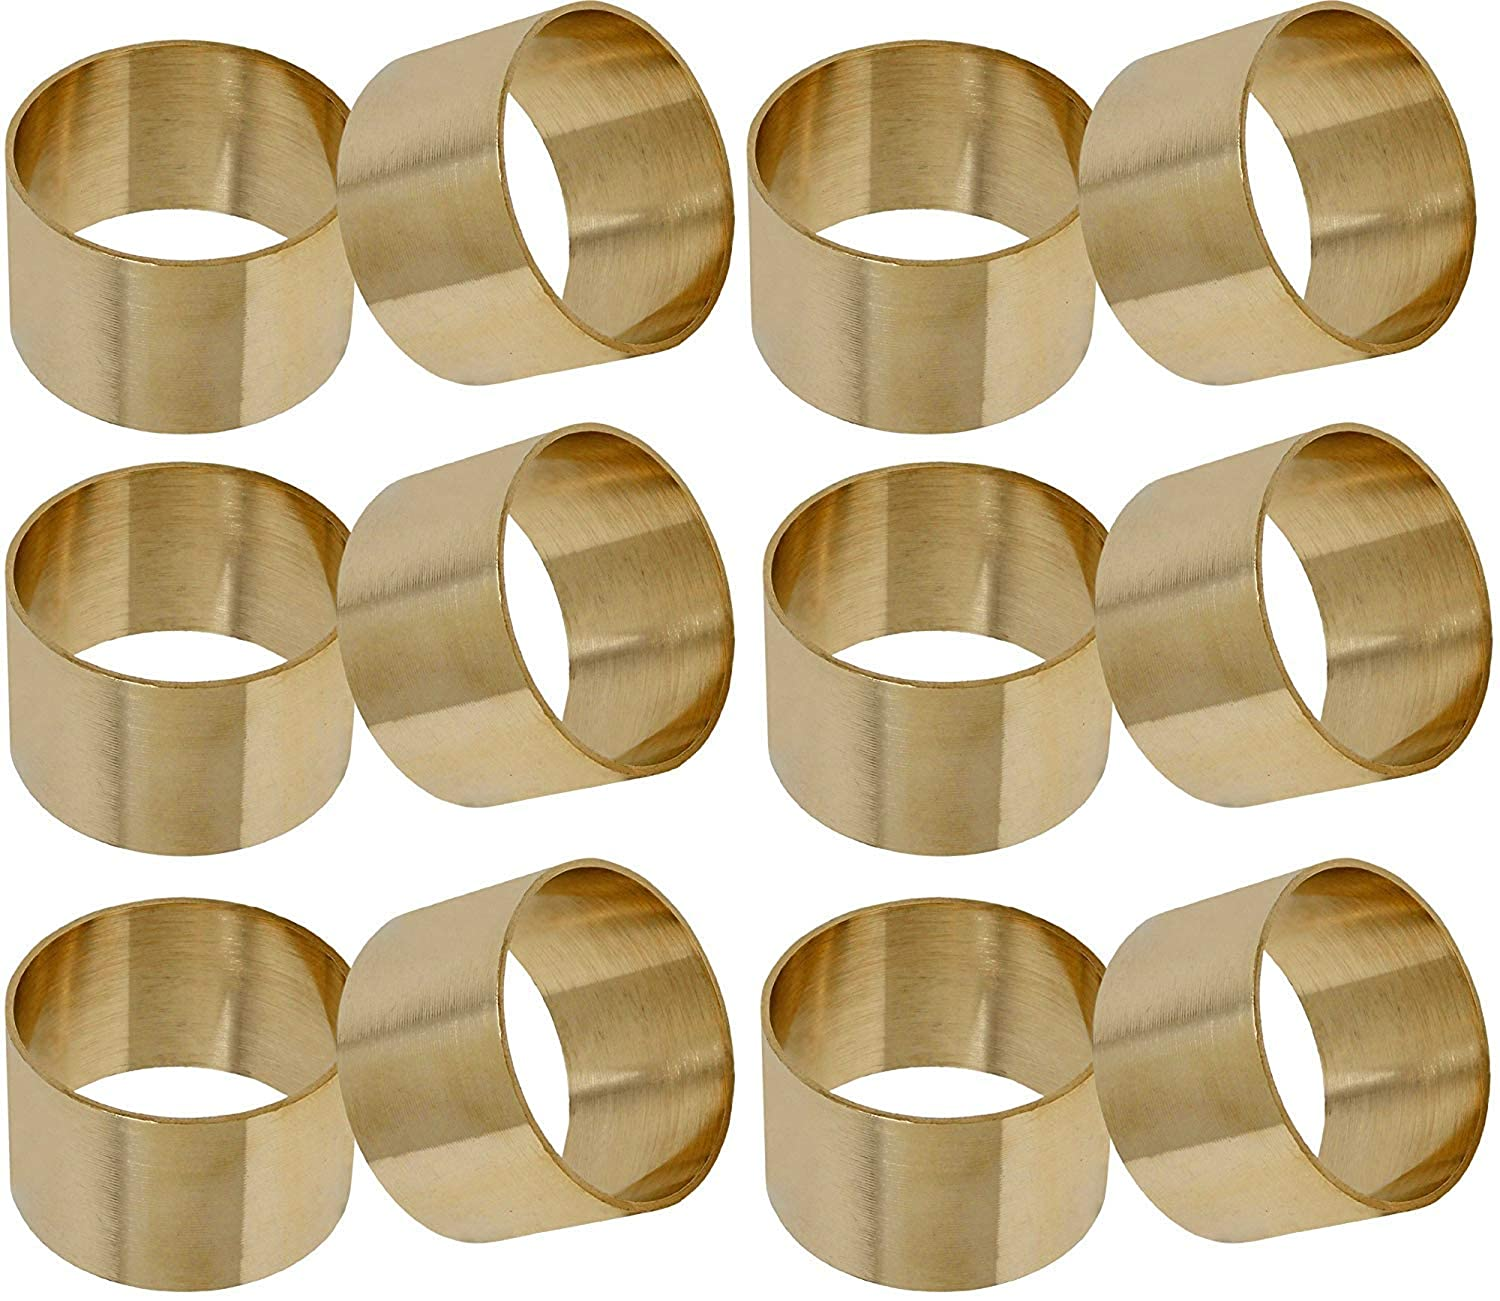 Smart Seller Point Brass Napkin Rings Set Round Weddings Dinner Parties Every Day Use Smart Seller Ppoint